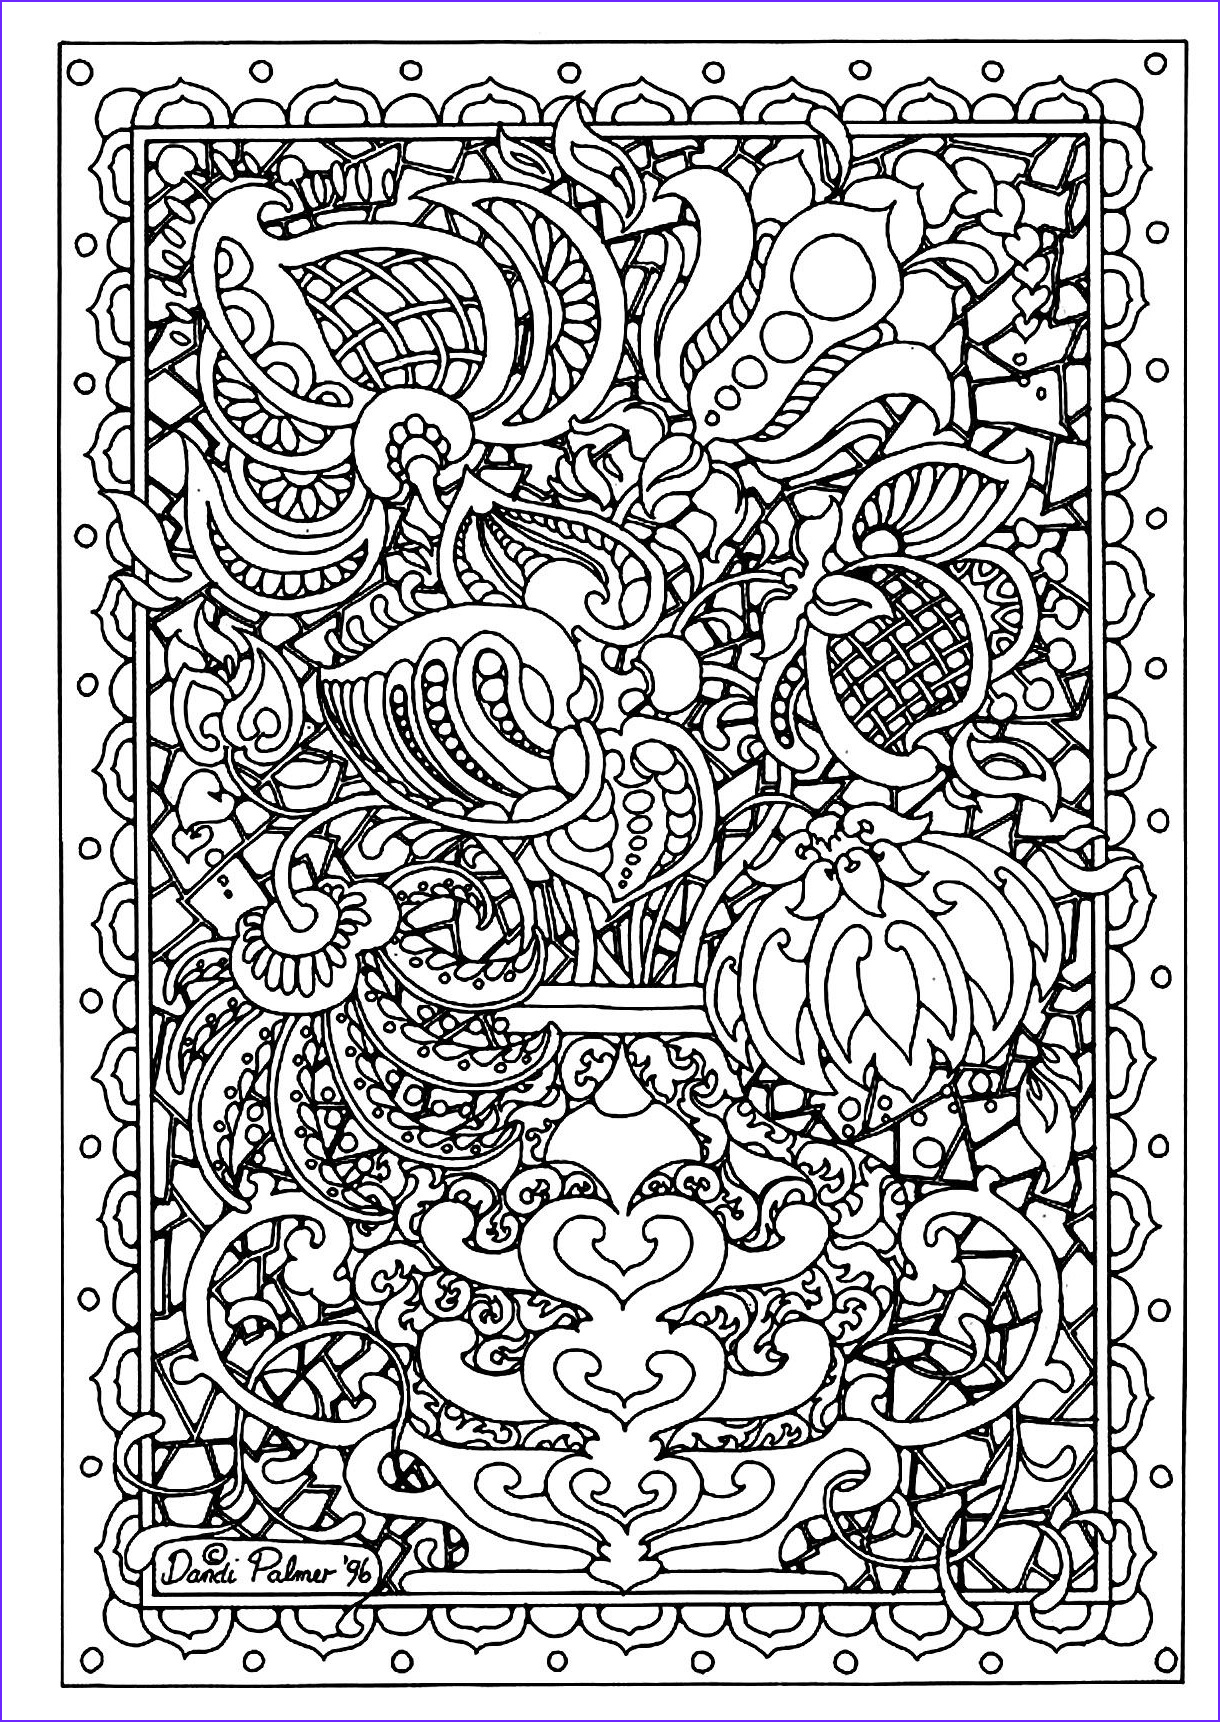 Difficult Coloring Pages New Collection Free Coloring Page Coloring Adult Flower Difficult